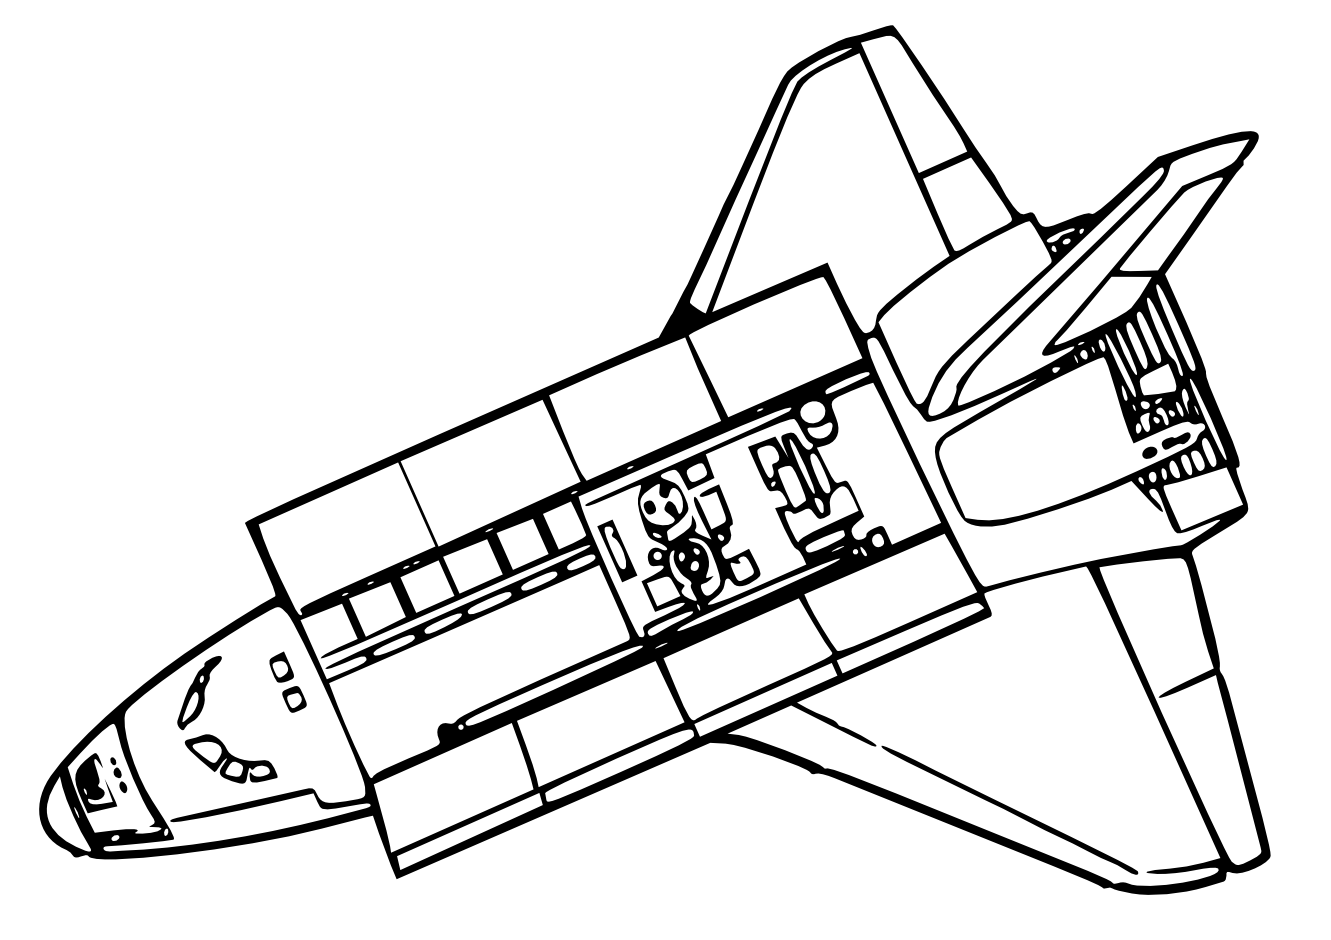 Space Shuttle Coloring Space Shuttle Clip Art